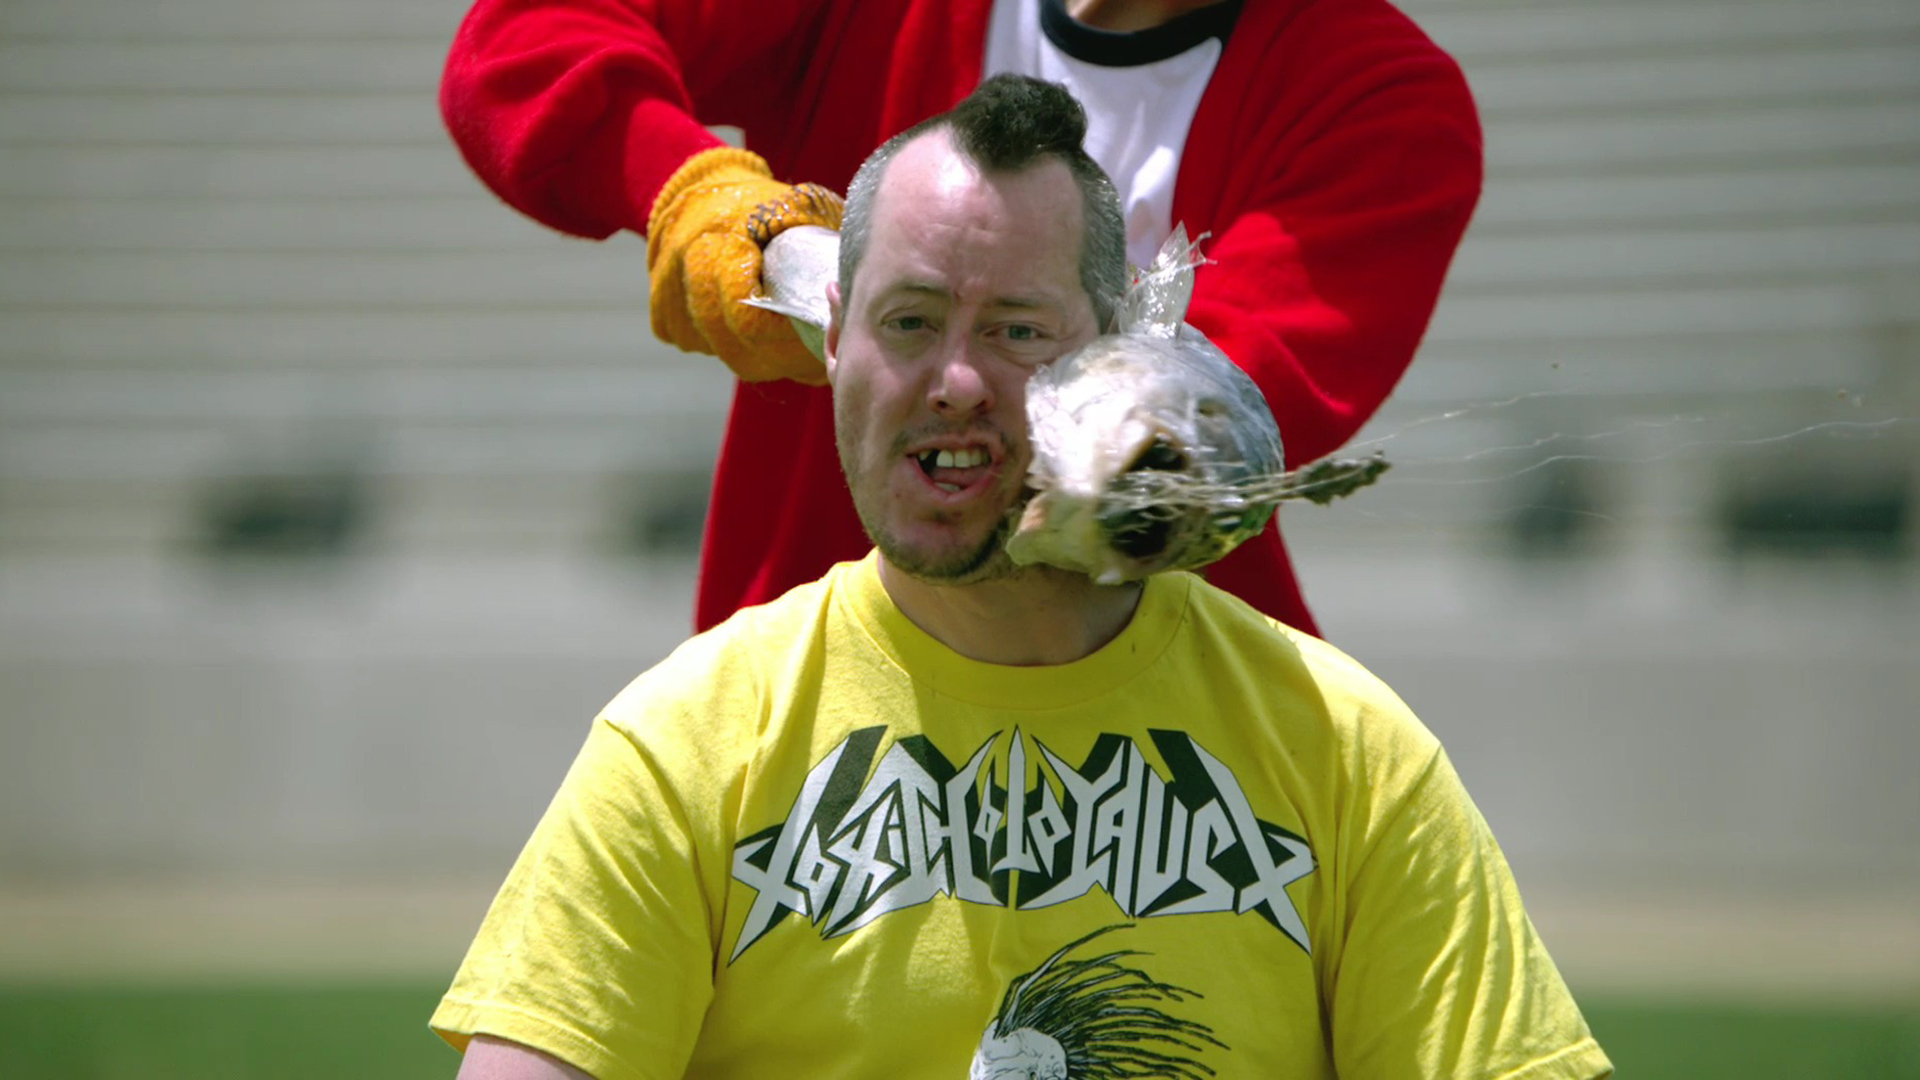 A still image from Jackass 3D.